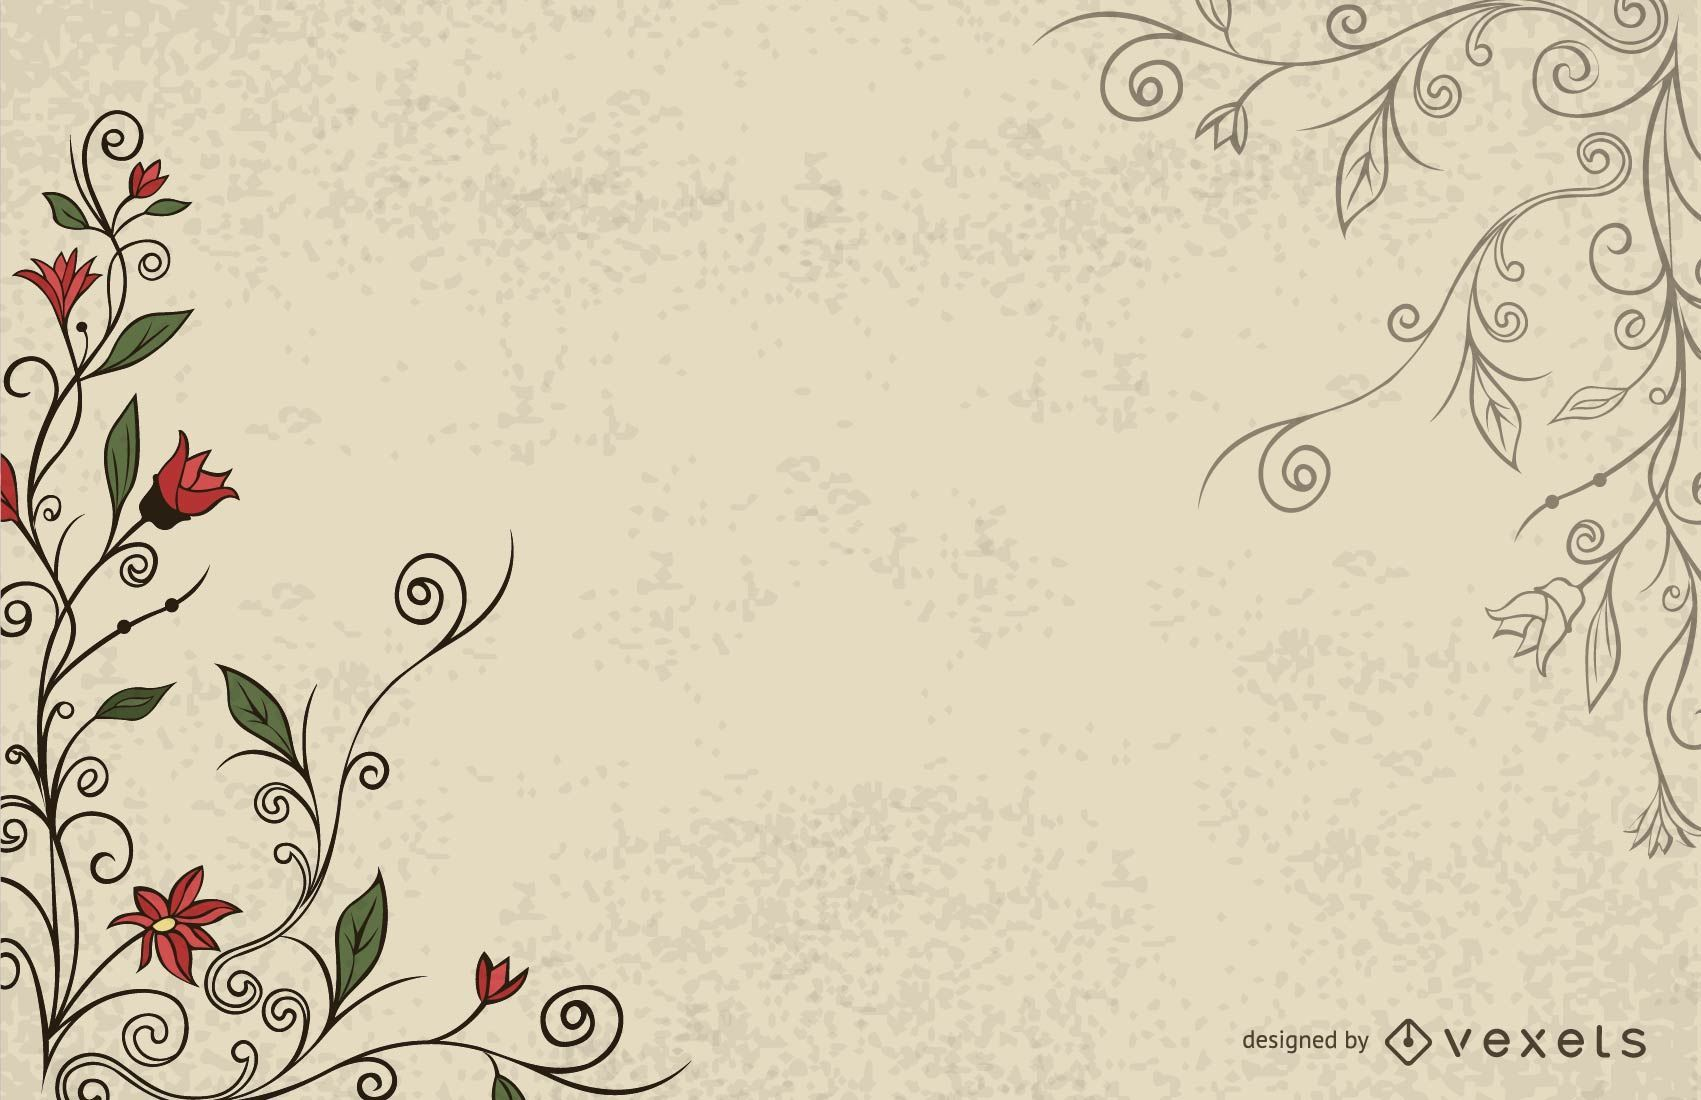 Simplistic Swirling Vintage Floral Background Vector Download